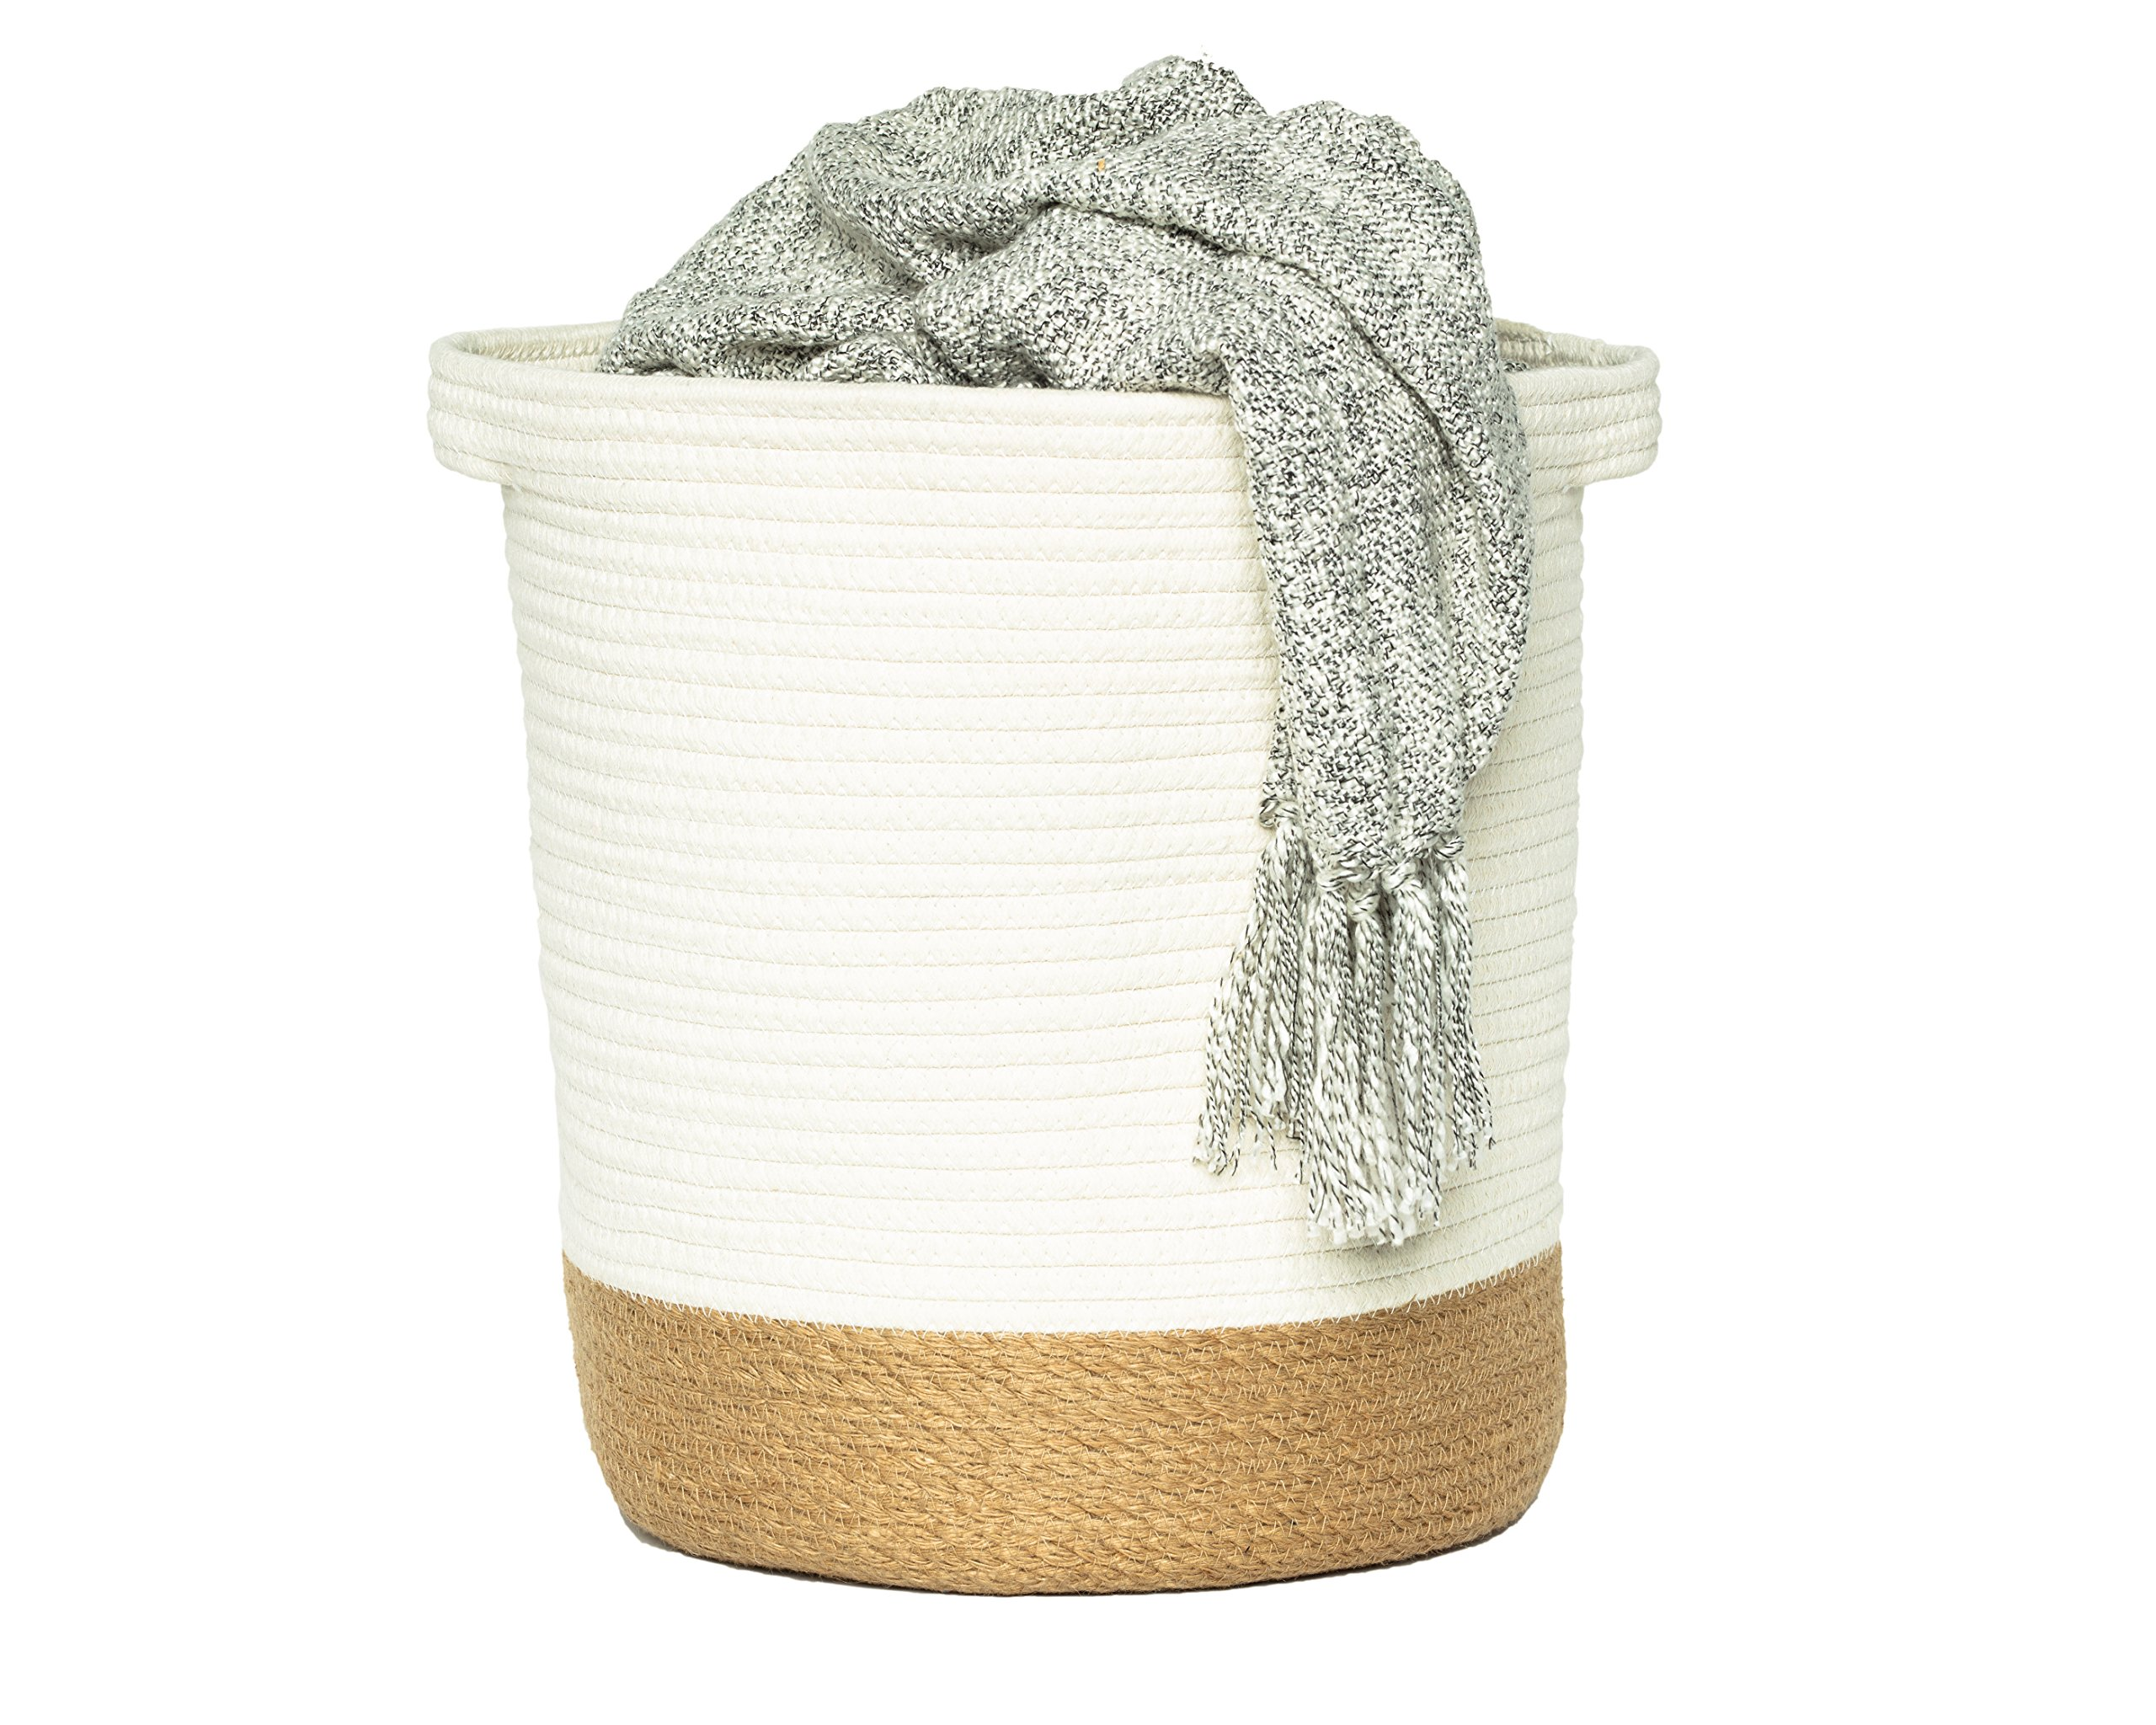 "Large Cotton Jute Rope Woven Storage Basket with Handles – Natural Laundry Toy Bin Towels Blanket Basket Decor Gift, 14"" x 15"""